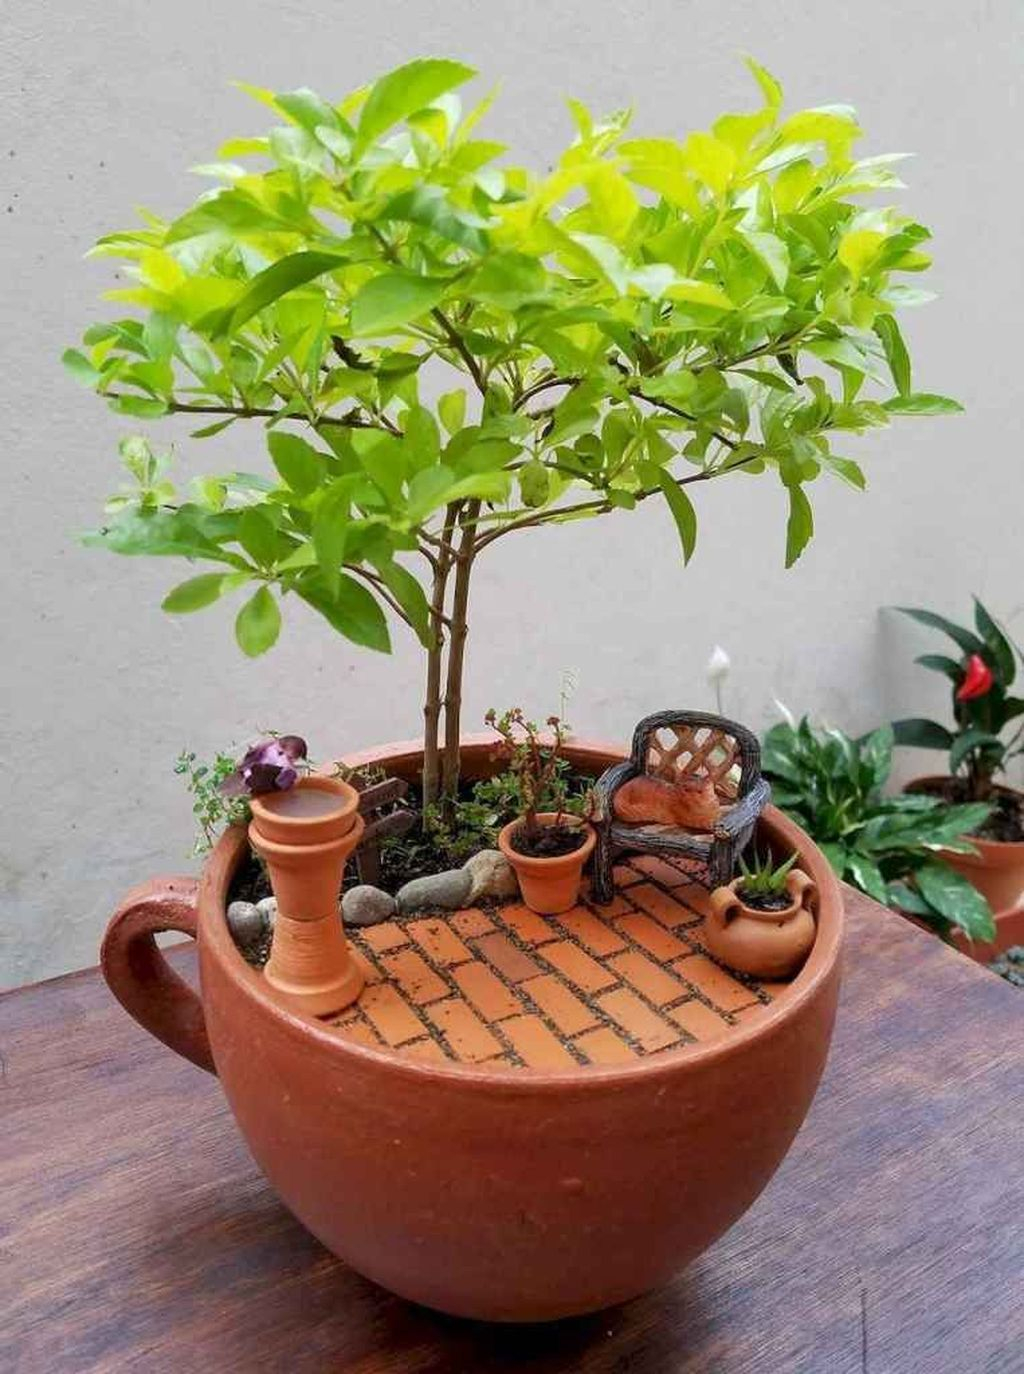 Inspiring Diy Teacup Mini Garden Ideas To Add Bliss To Your Home 04